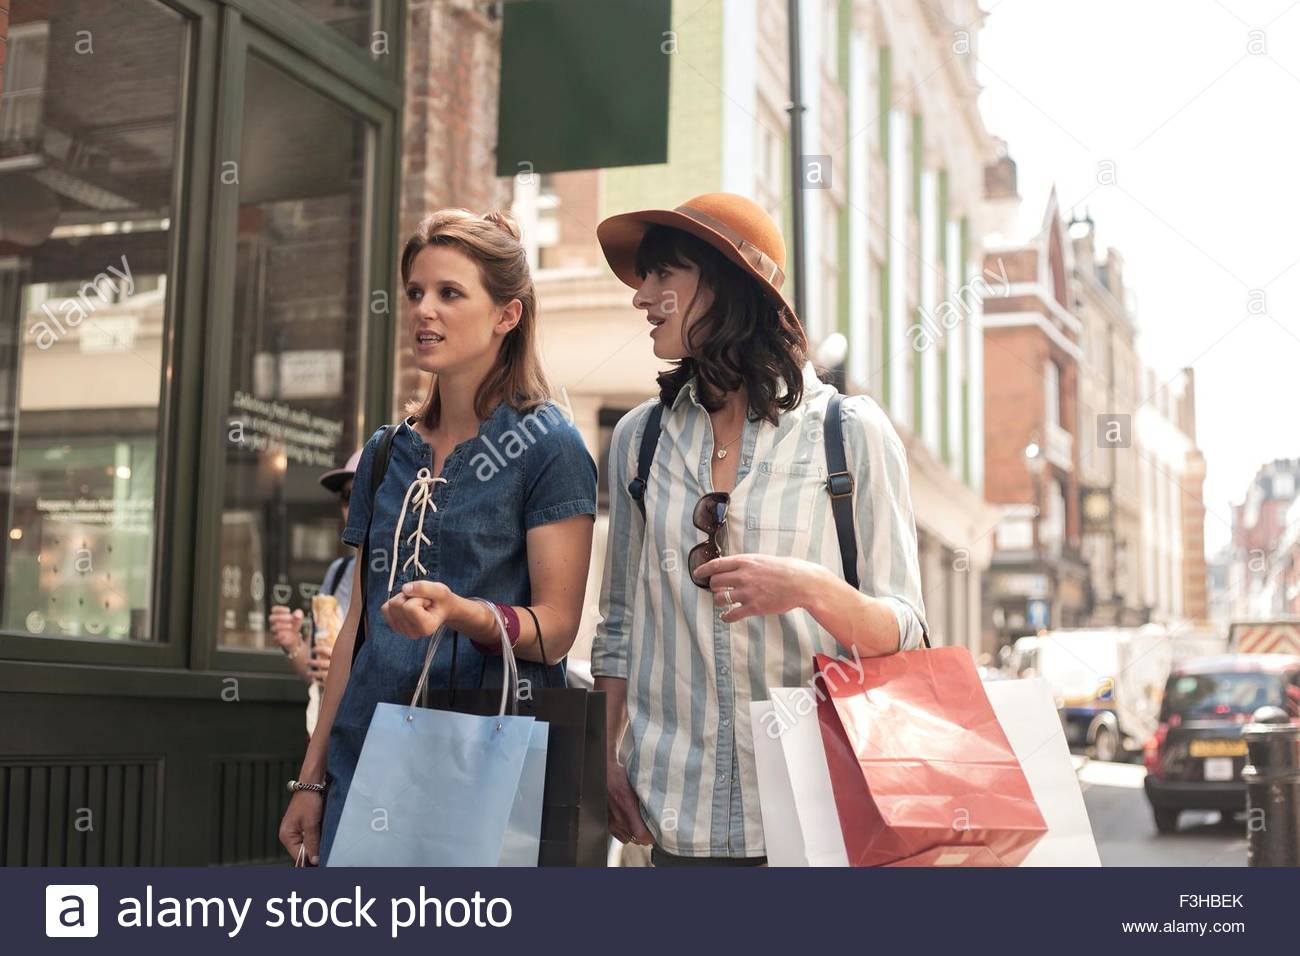 Two women carrying shopping bags looking at shop window Stock Photo